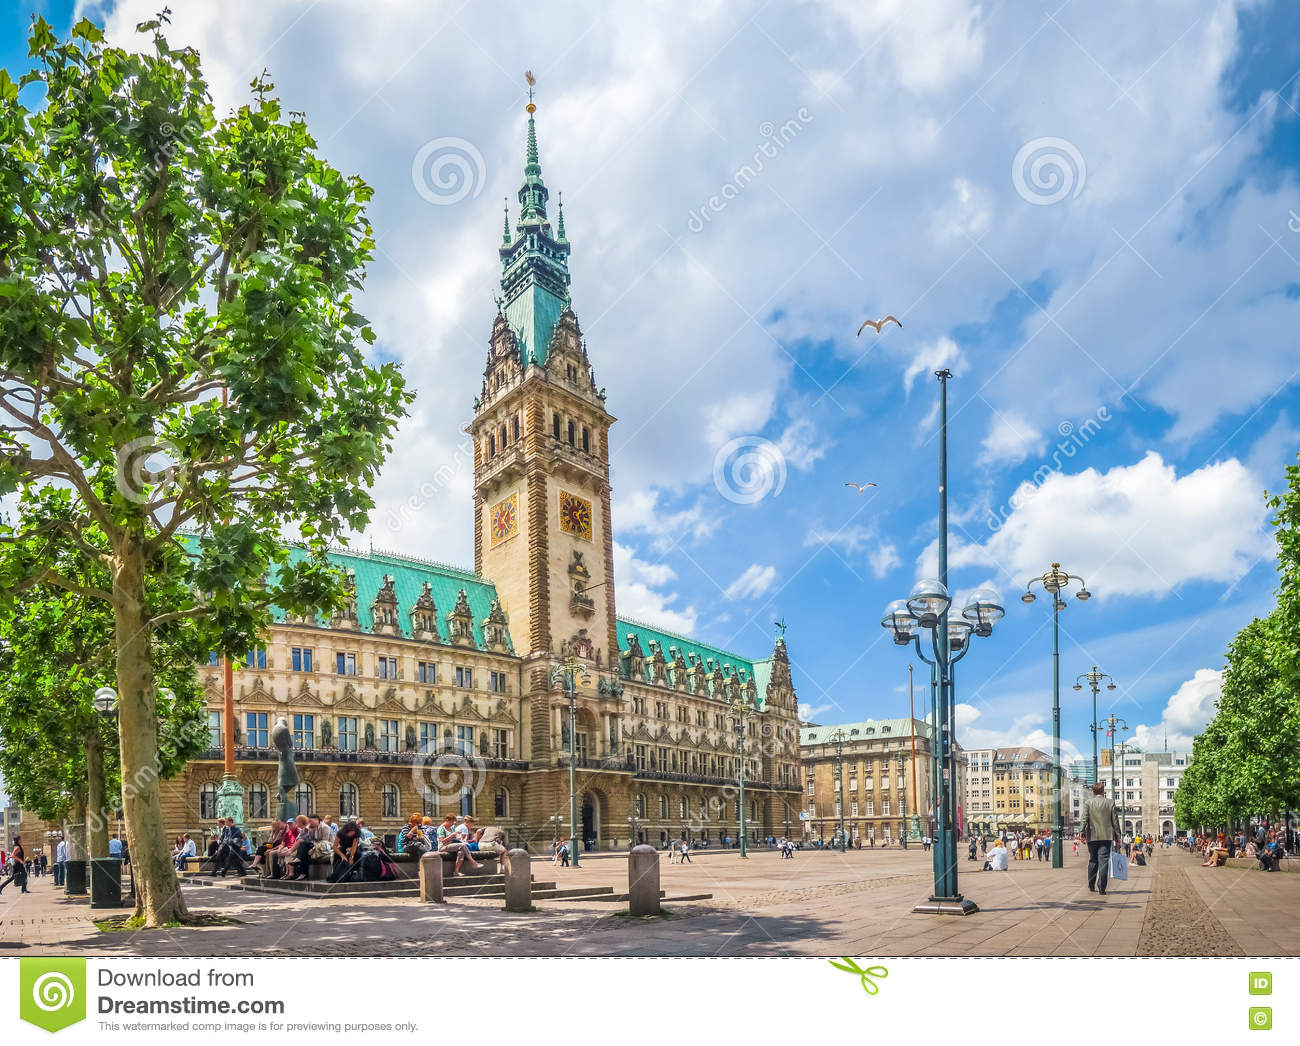 hamburg rathaus am marktplatz in altstadt viertel deutschland stockfoto bild 72325820. Black Bedroom Furniture Sets. Home Design Ideas